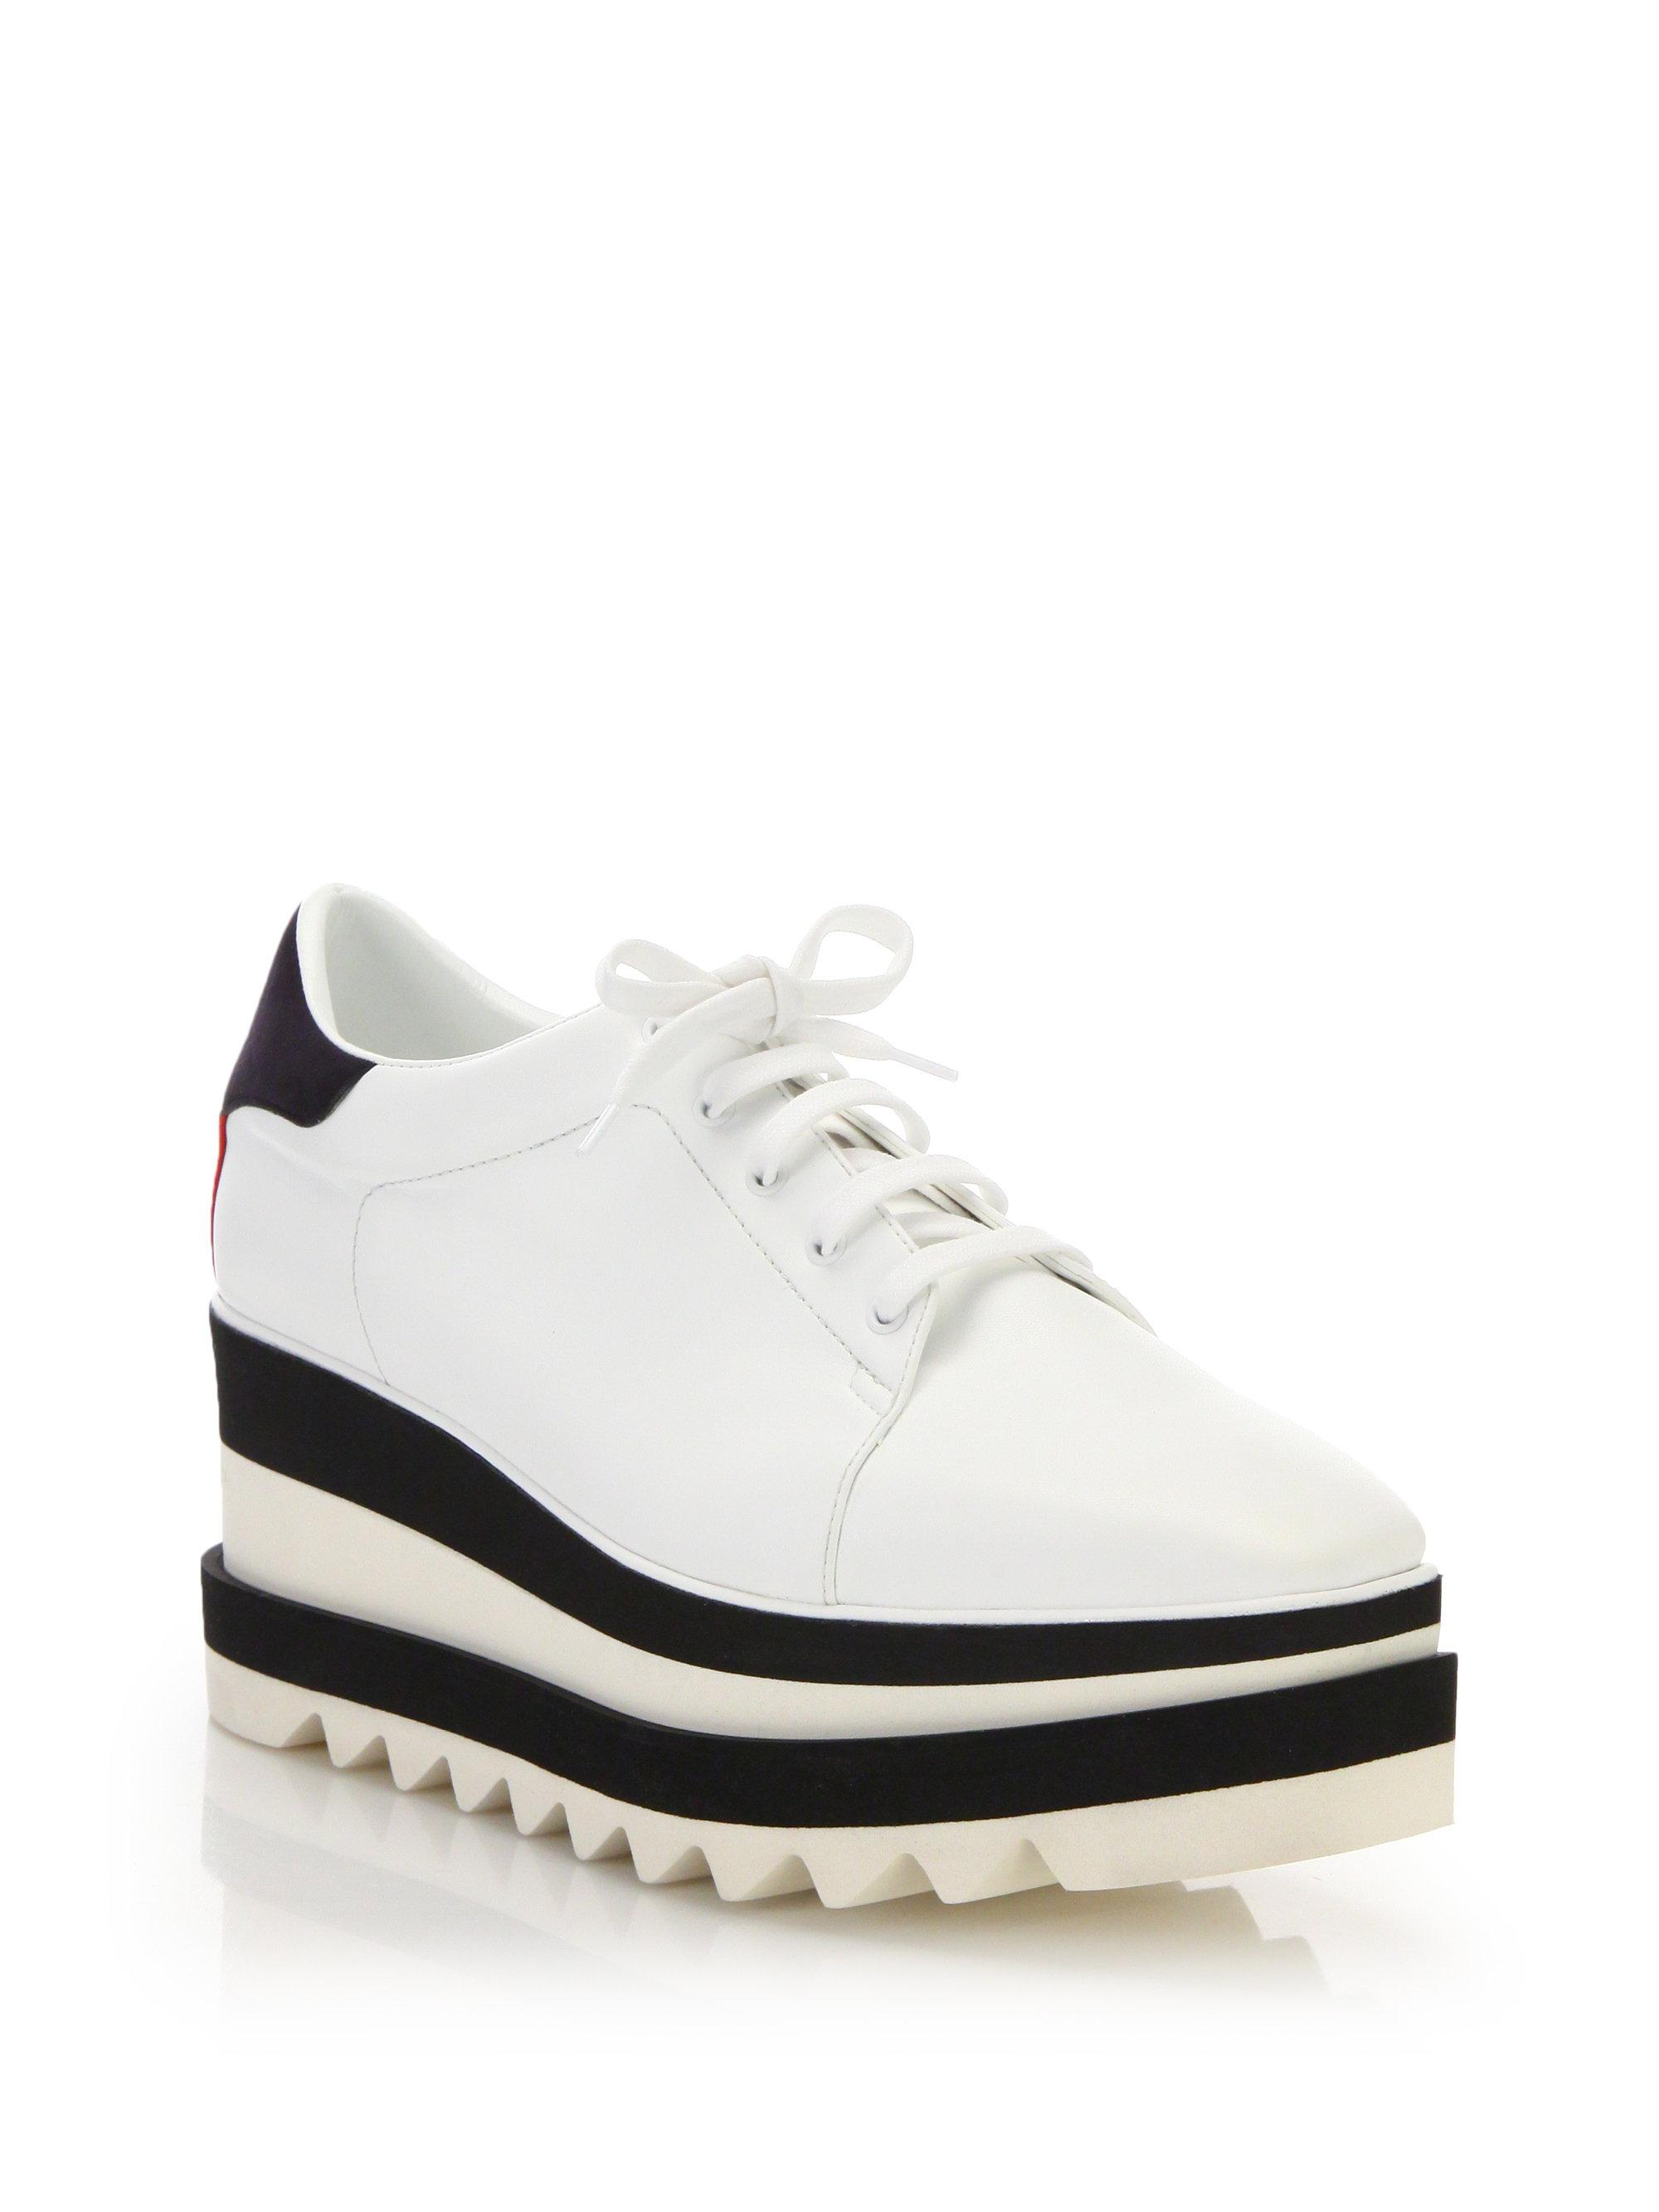 fc6b1e168d Lyst - Stella Mccartney Platform Low-top Sneakers in White